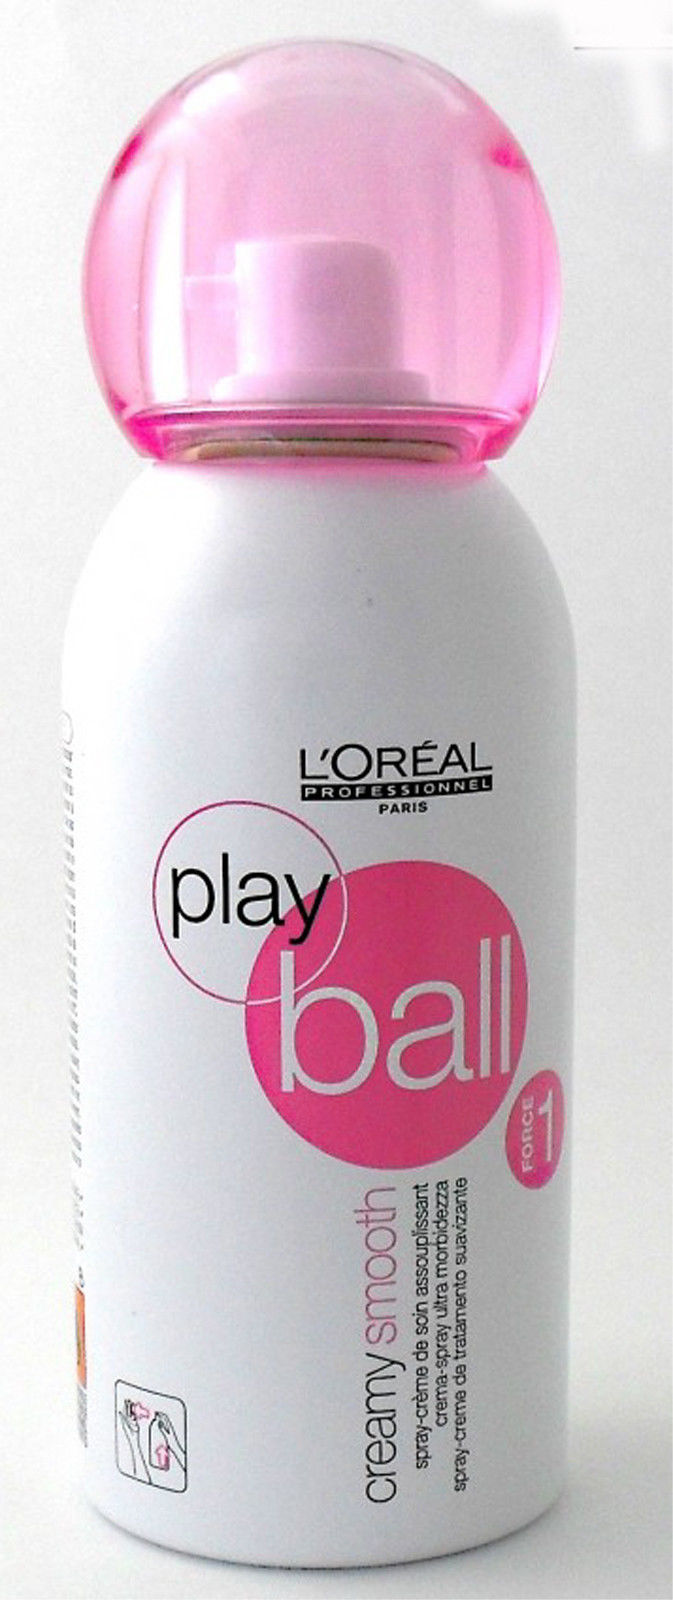 L OREAL PROFESSIONNEL PLAY BALL FORCE 1 CREAMY SMOOTH CREMA PER STYLING 15